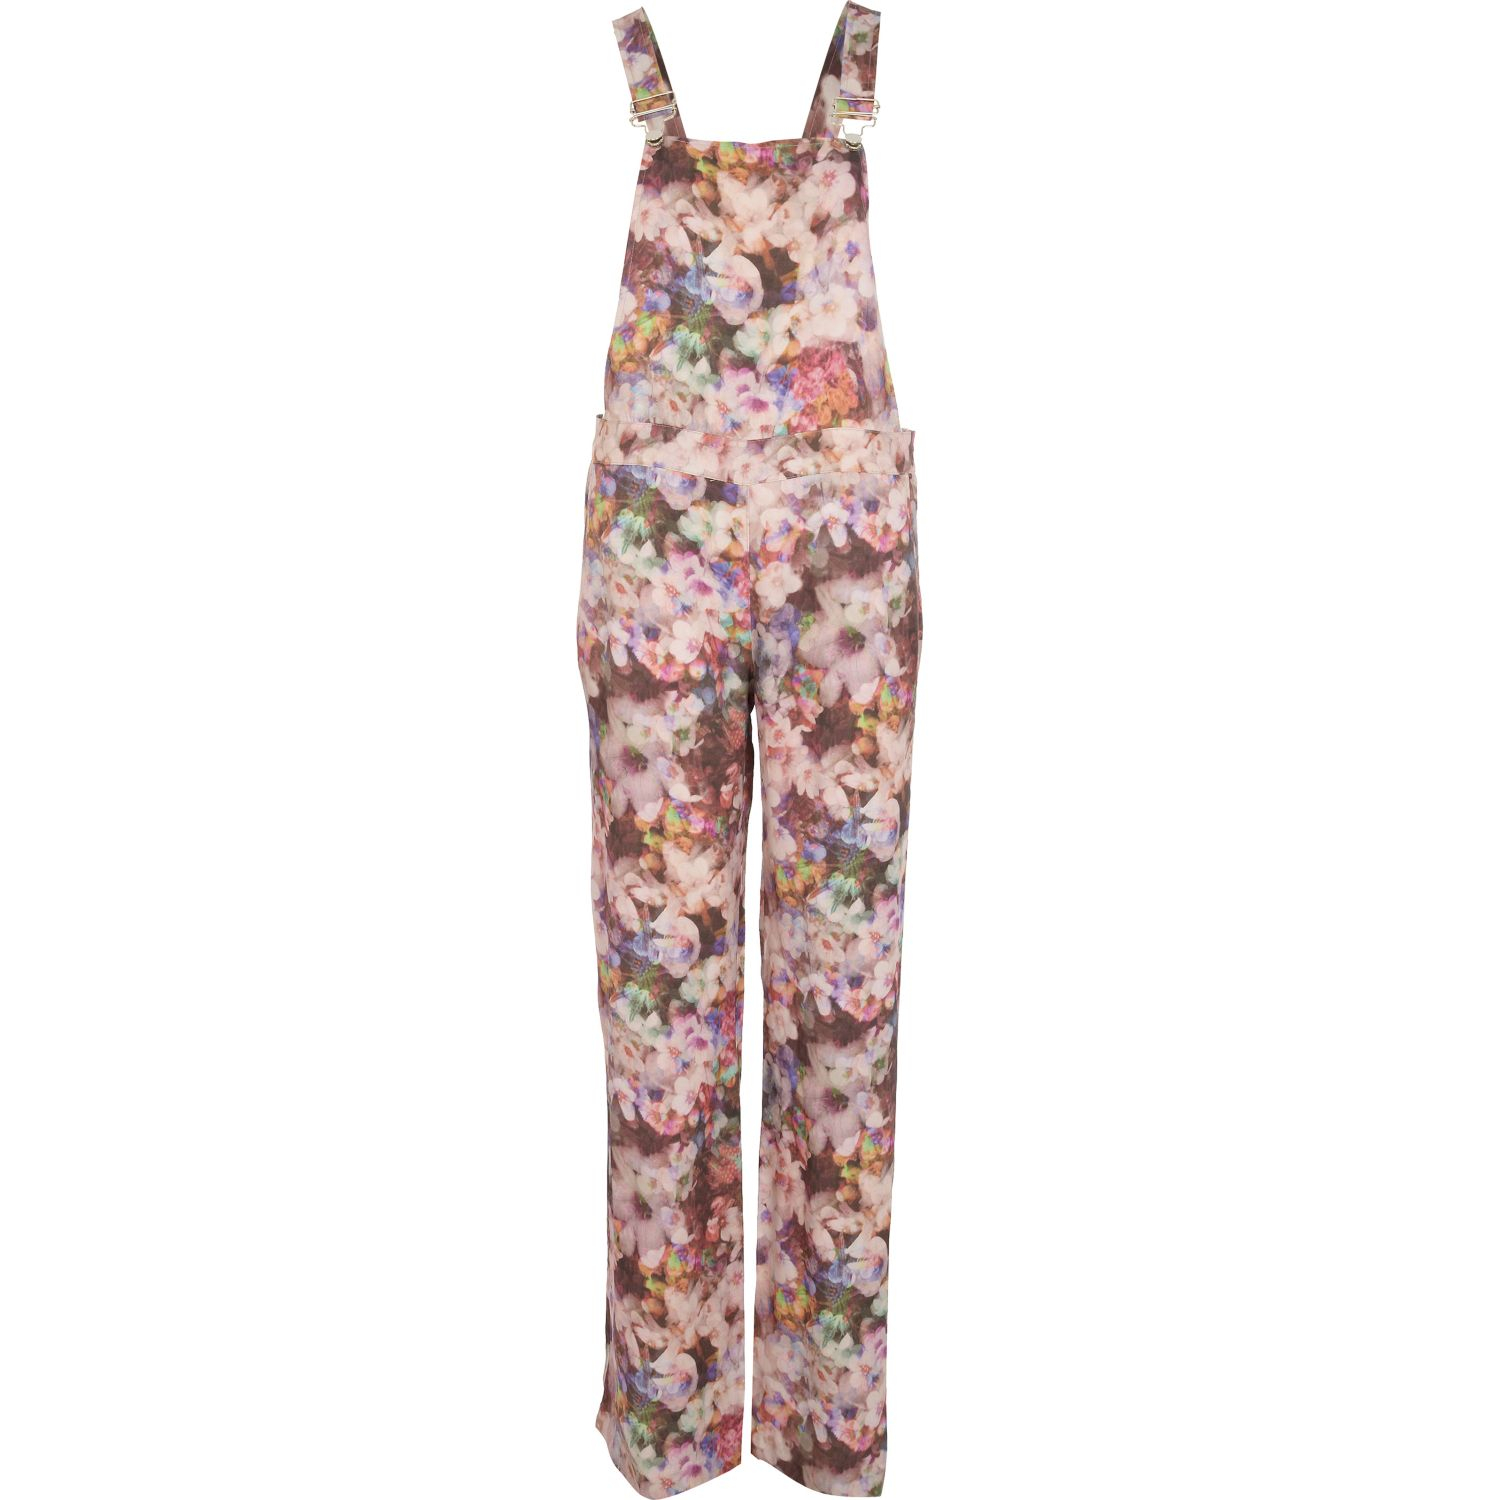 34872fdd93 River Island Pink Floral Print Long Overalls in Pink - Lyst